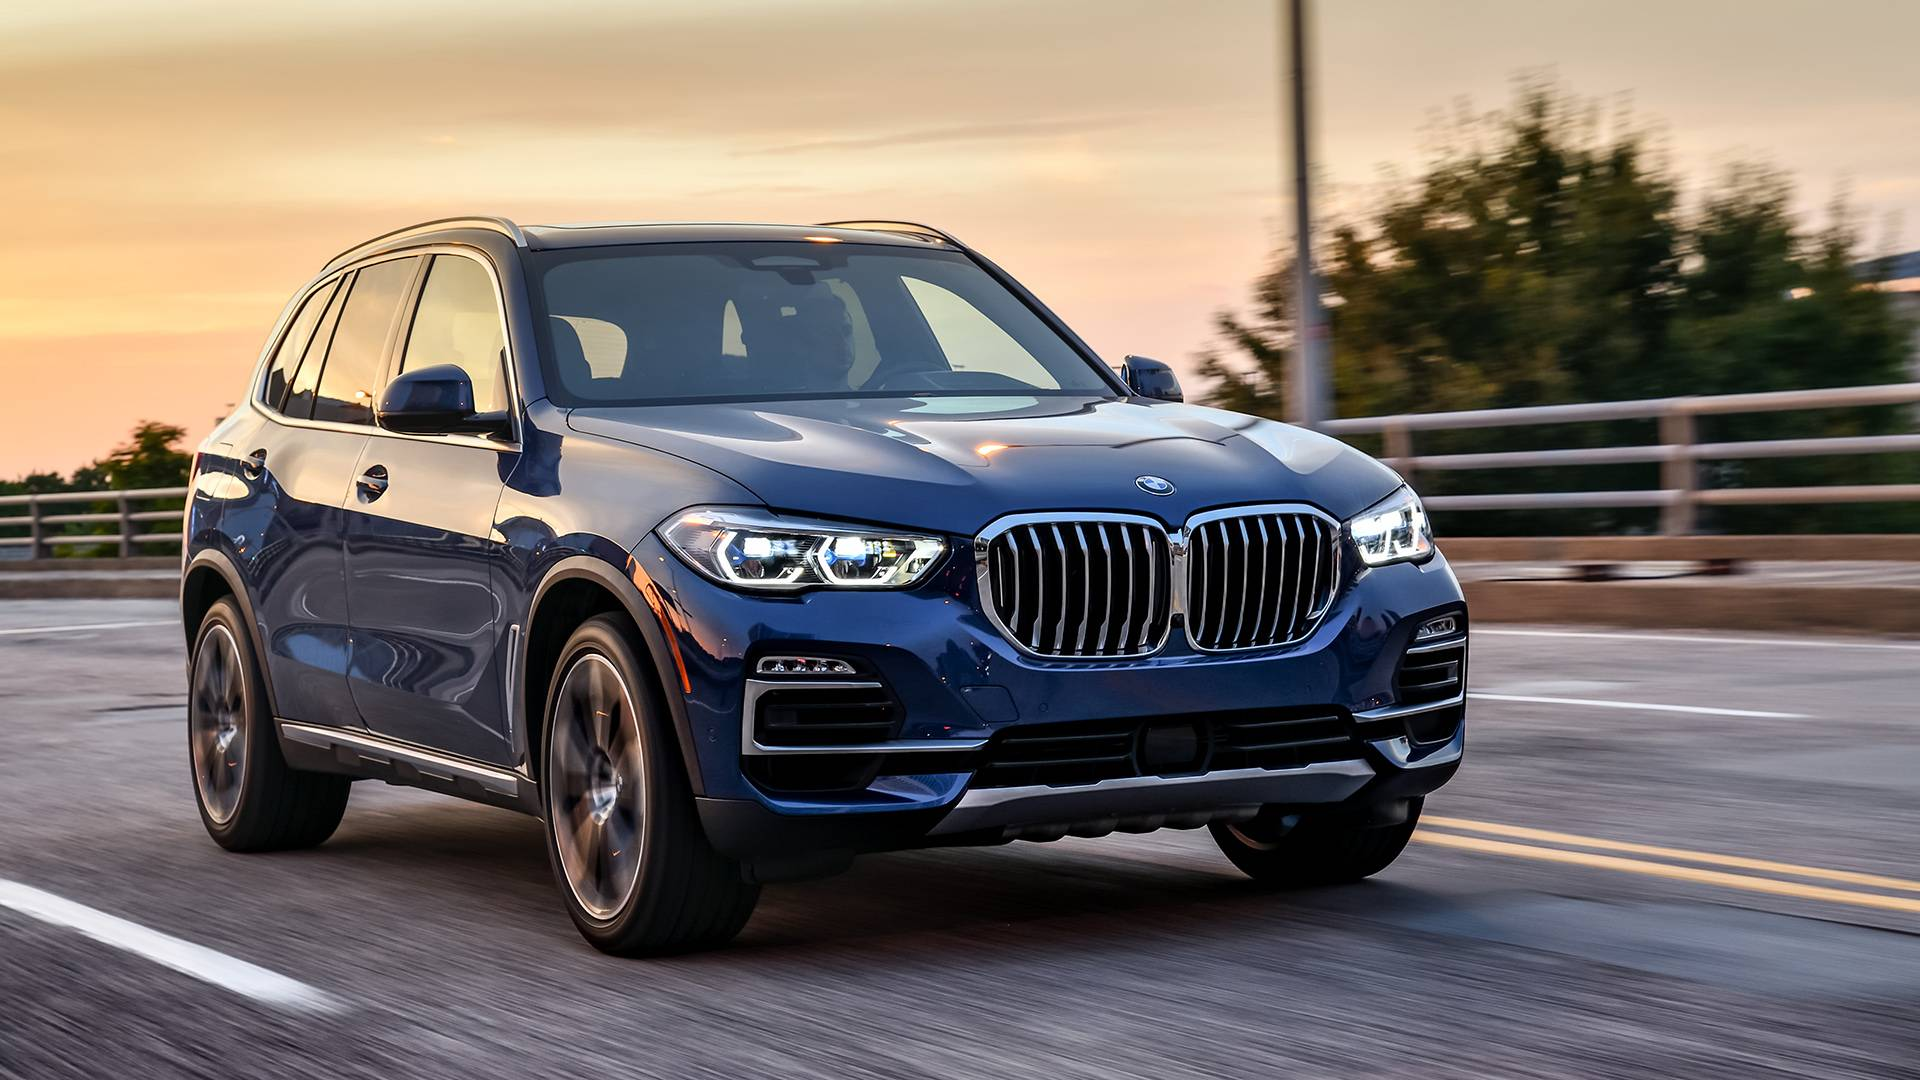 2019 Bmw X5 Xdrive40i First Drive Just Because You Can